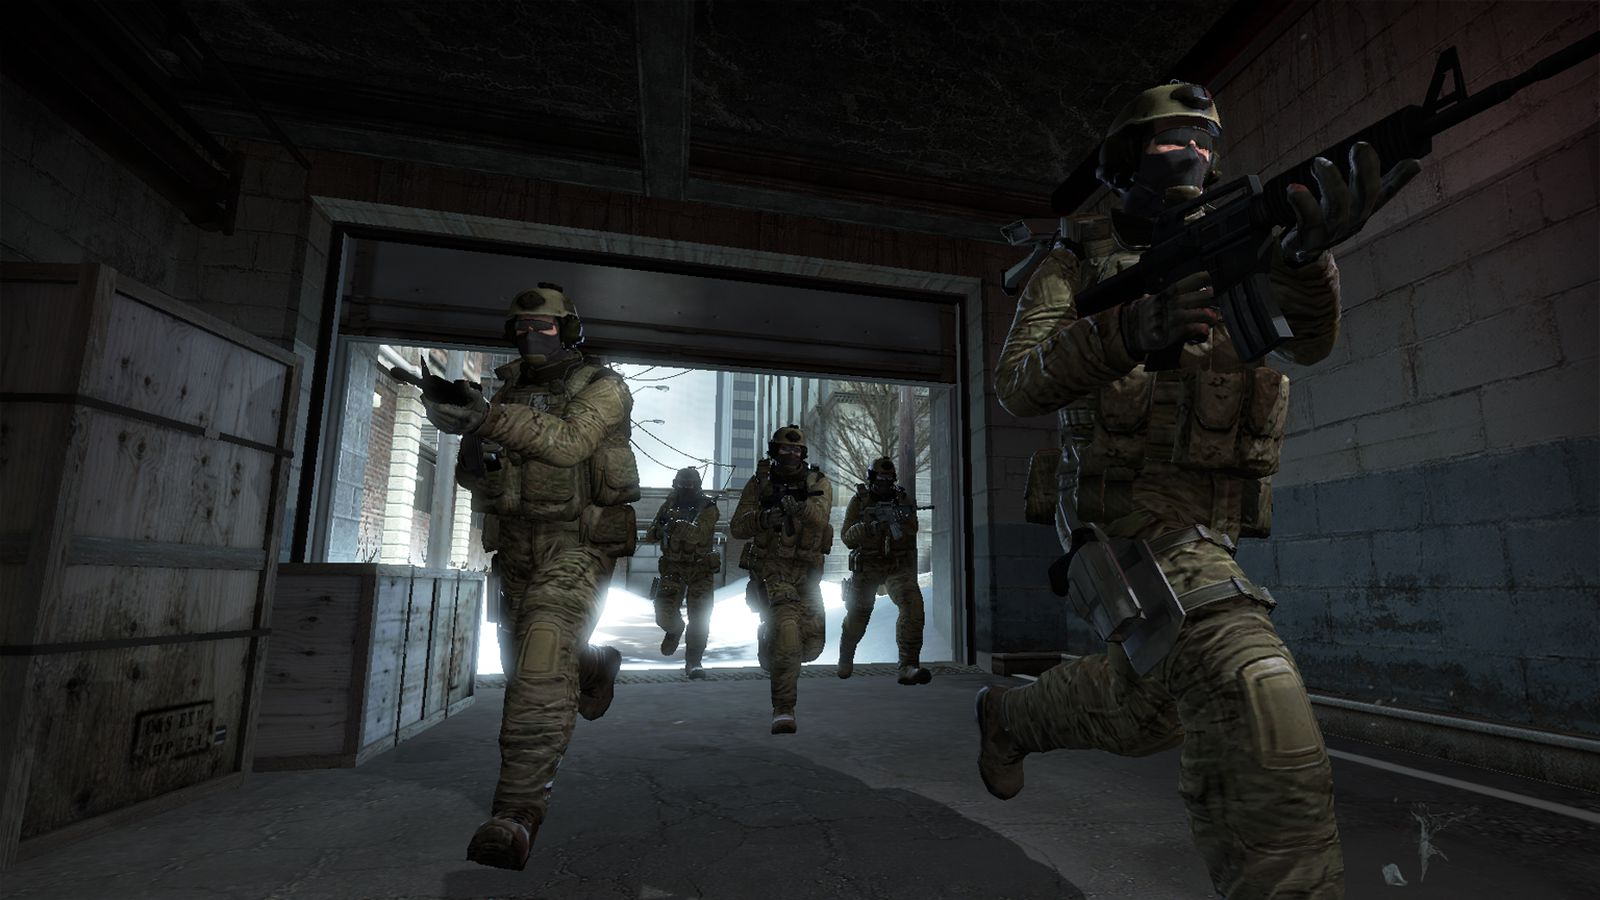 essay counter strike A retaliatory strike back in the cold war years, mutual assured destruction deterred each side from a first strike by guaranteeing a devastating counterstrike by the aggressed-against party verb ( transitive ).